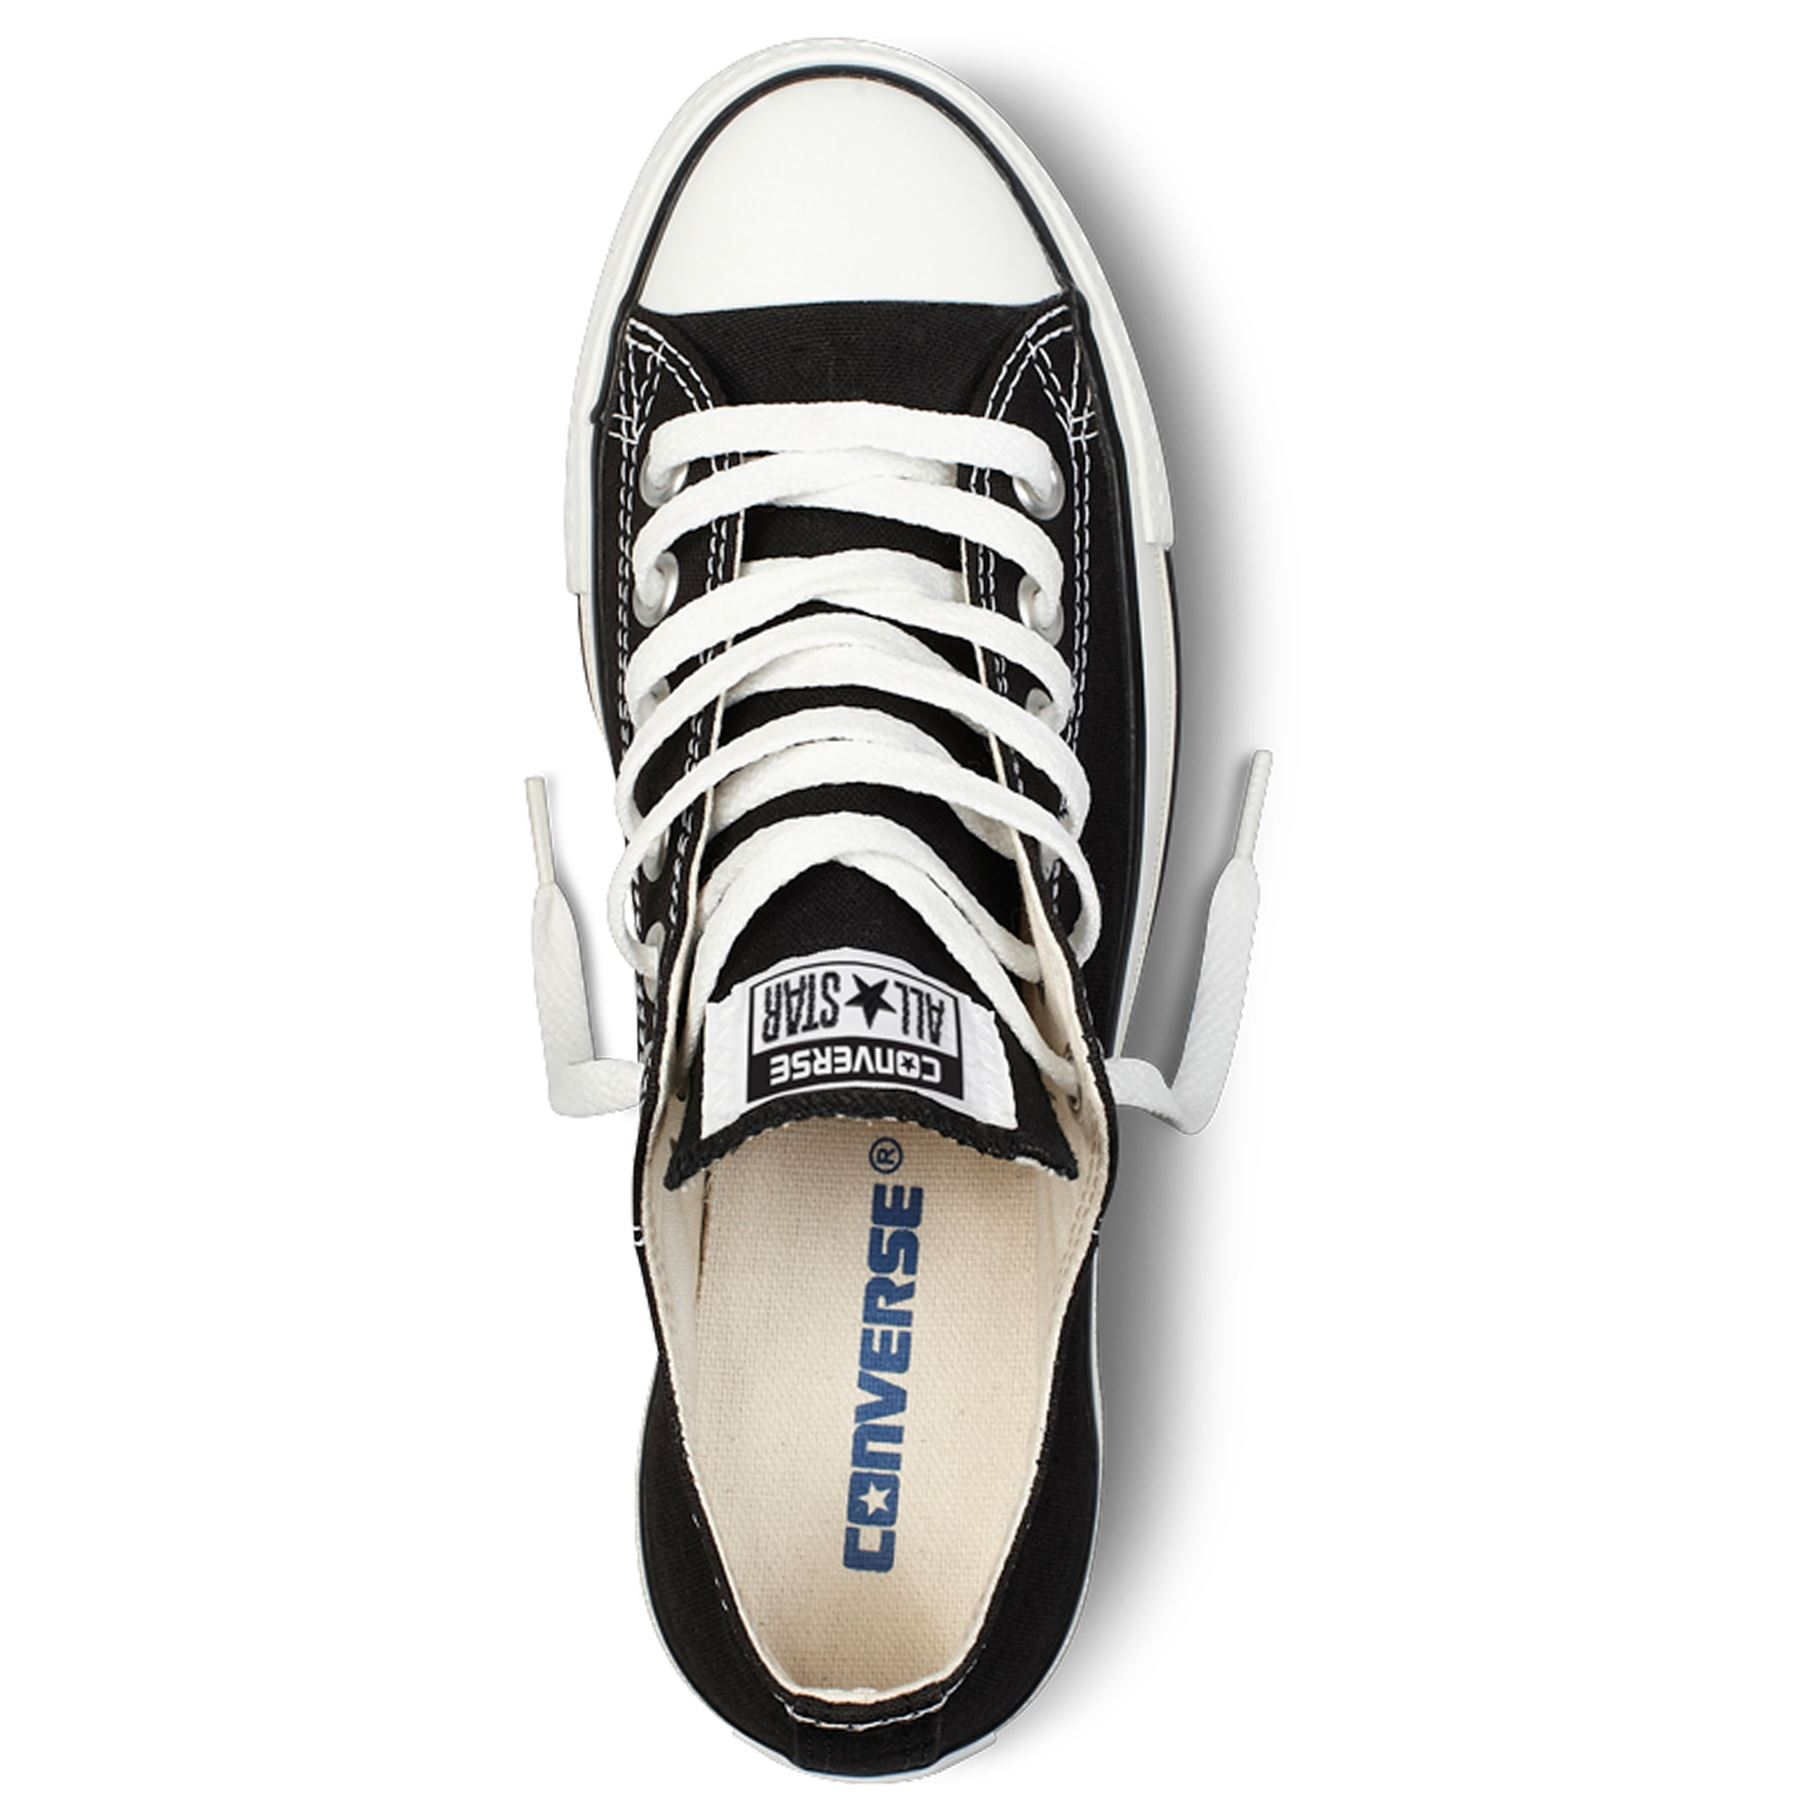 Converse-All-Star-Unisex-Chuck-Taylor-New-Mens-Womens-Low-Tops-Trainers-Pumps thumbnail 6